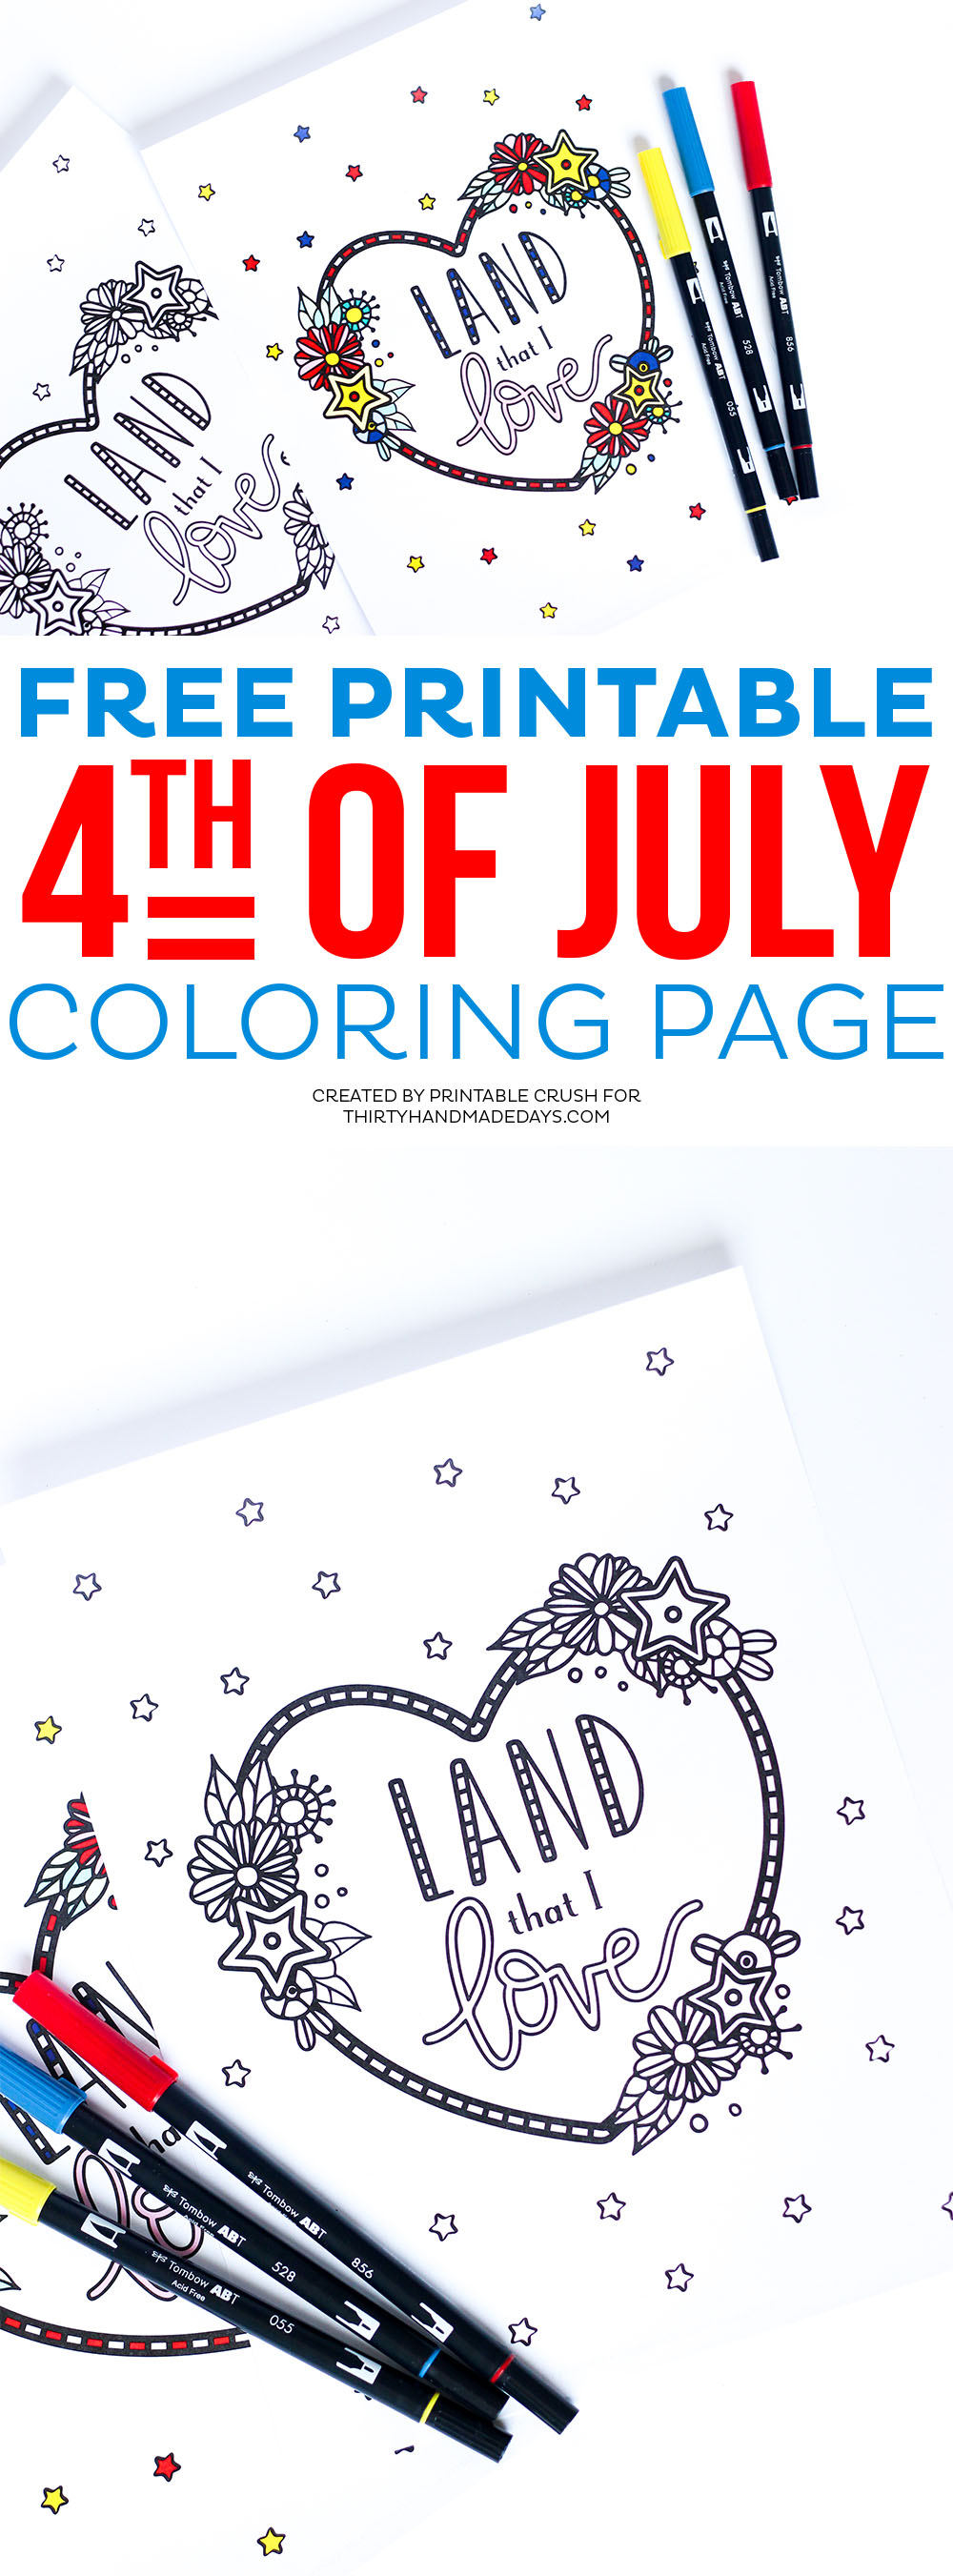 Download this pretty FREE Printable Fourth of July Coloring Page for your kids or for guests at your Independence Day party!